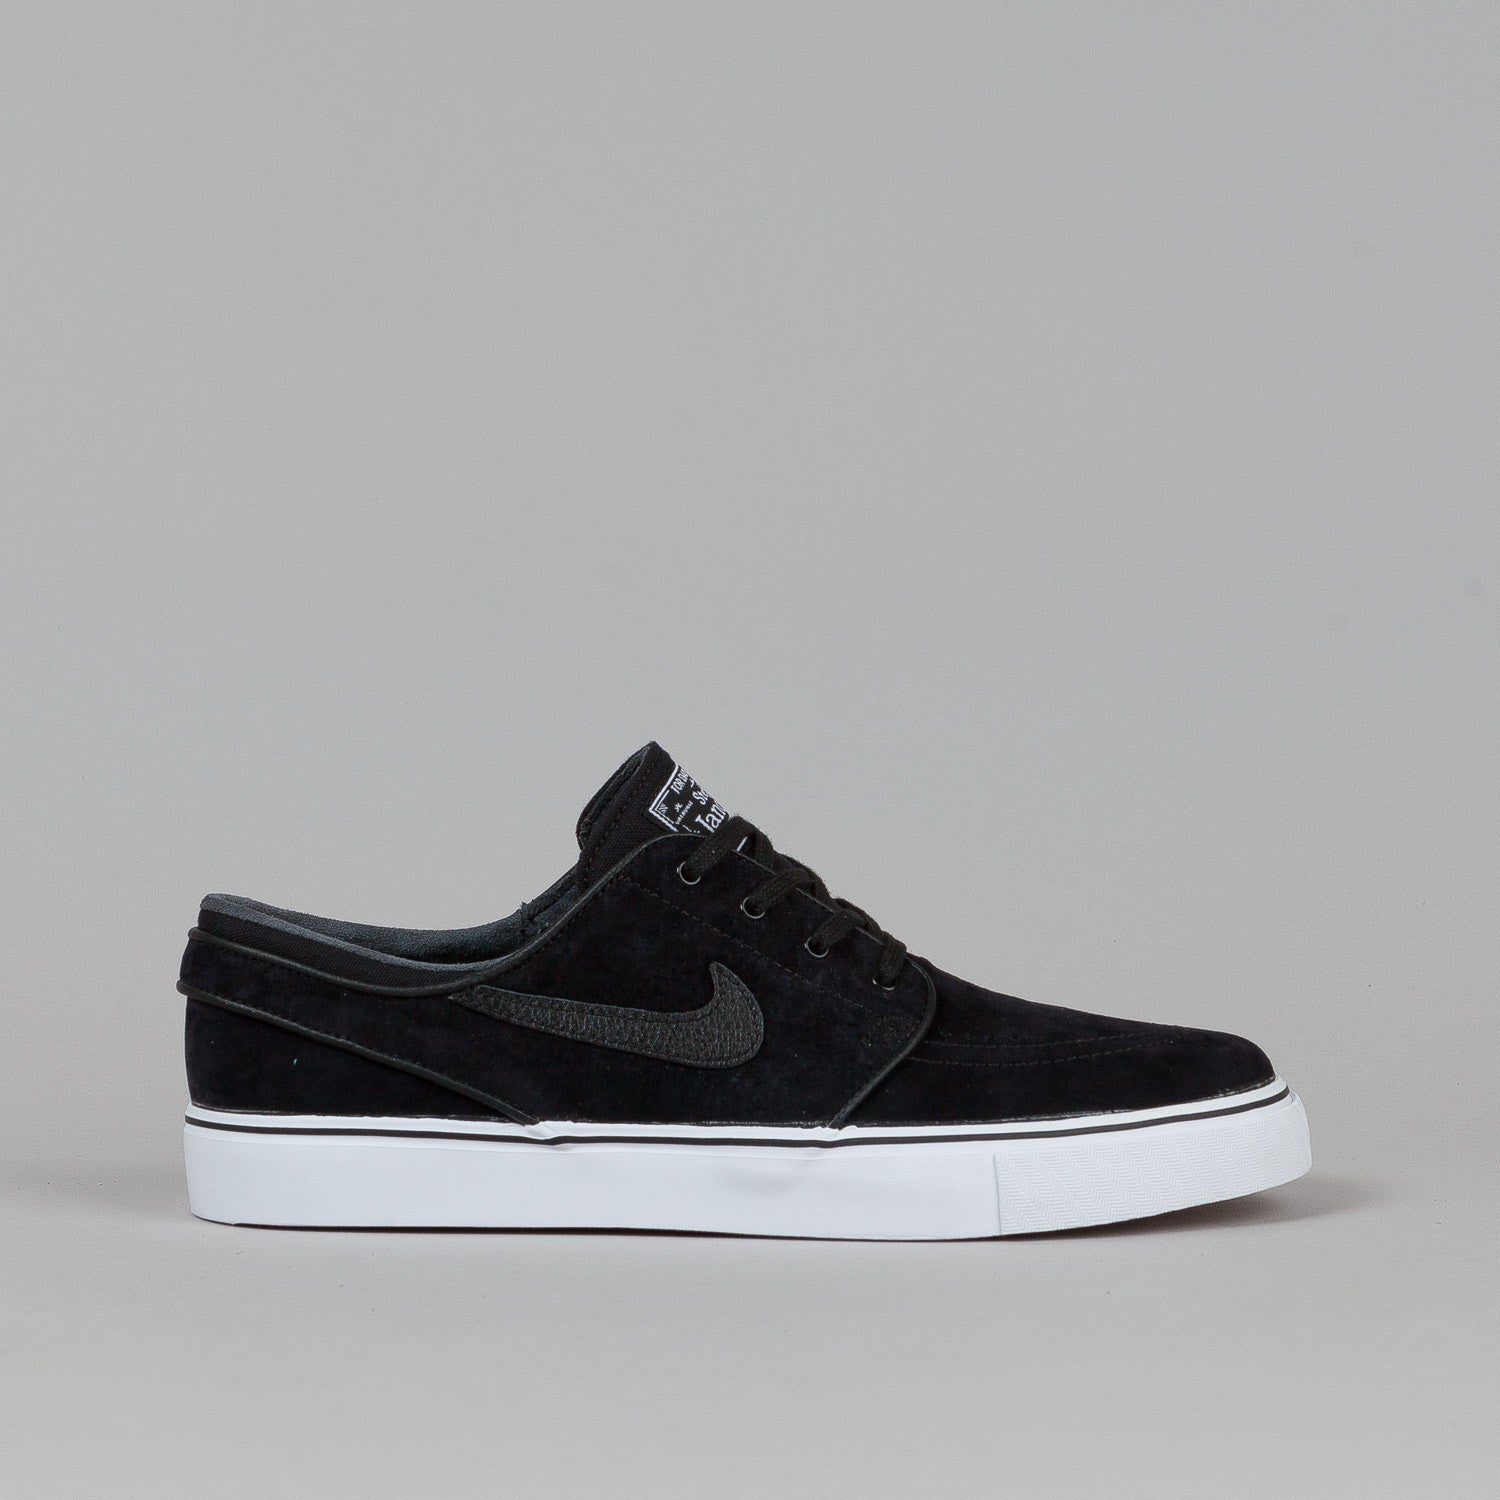 Nike SB Stefan Janoski SE Shoes Black / Black